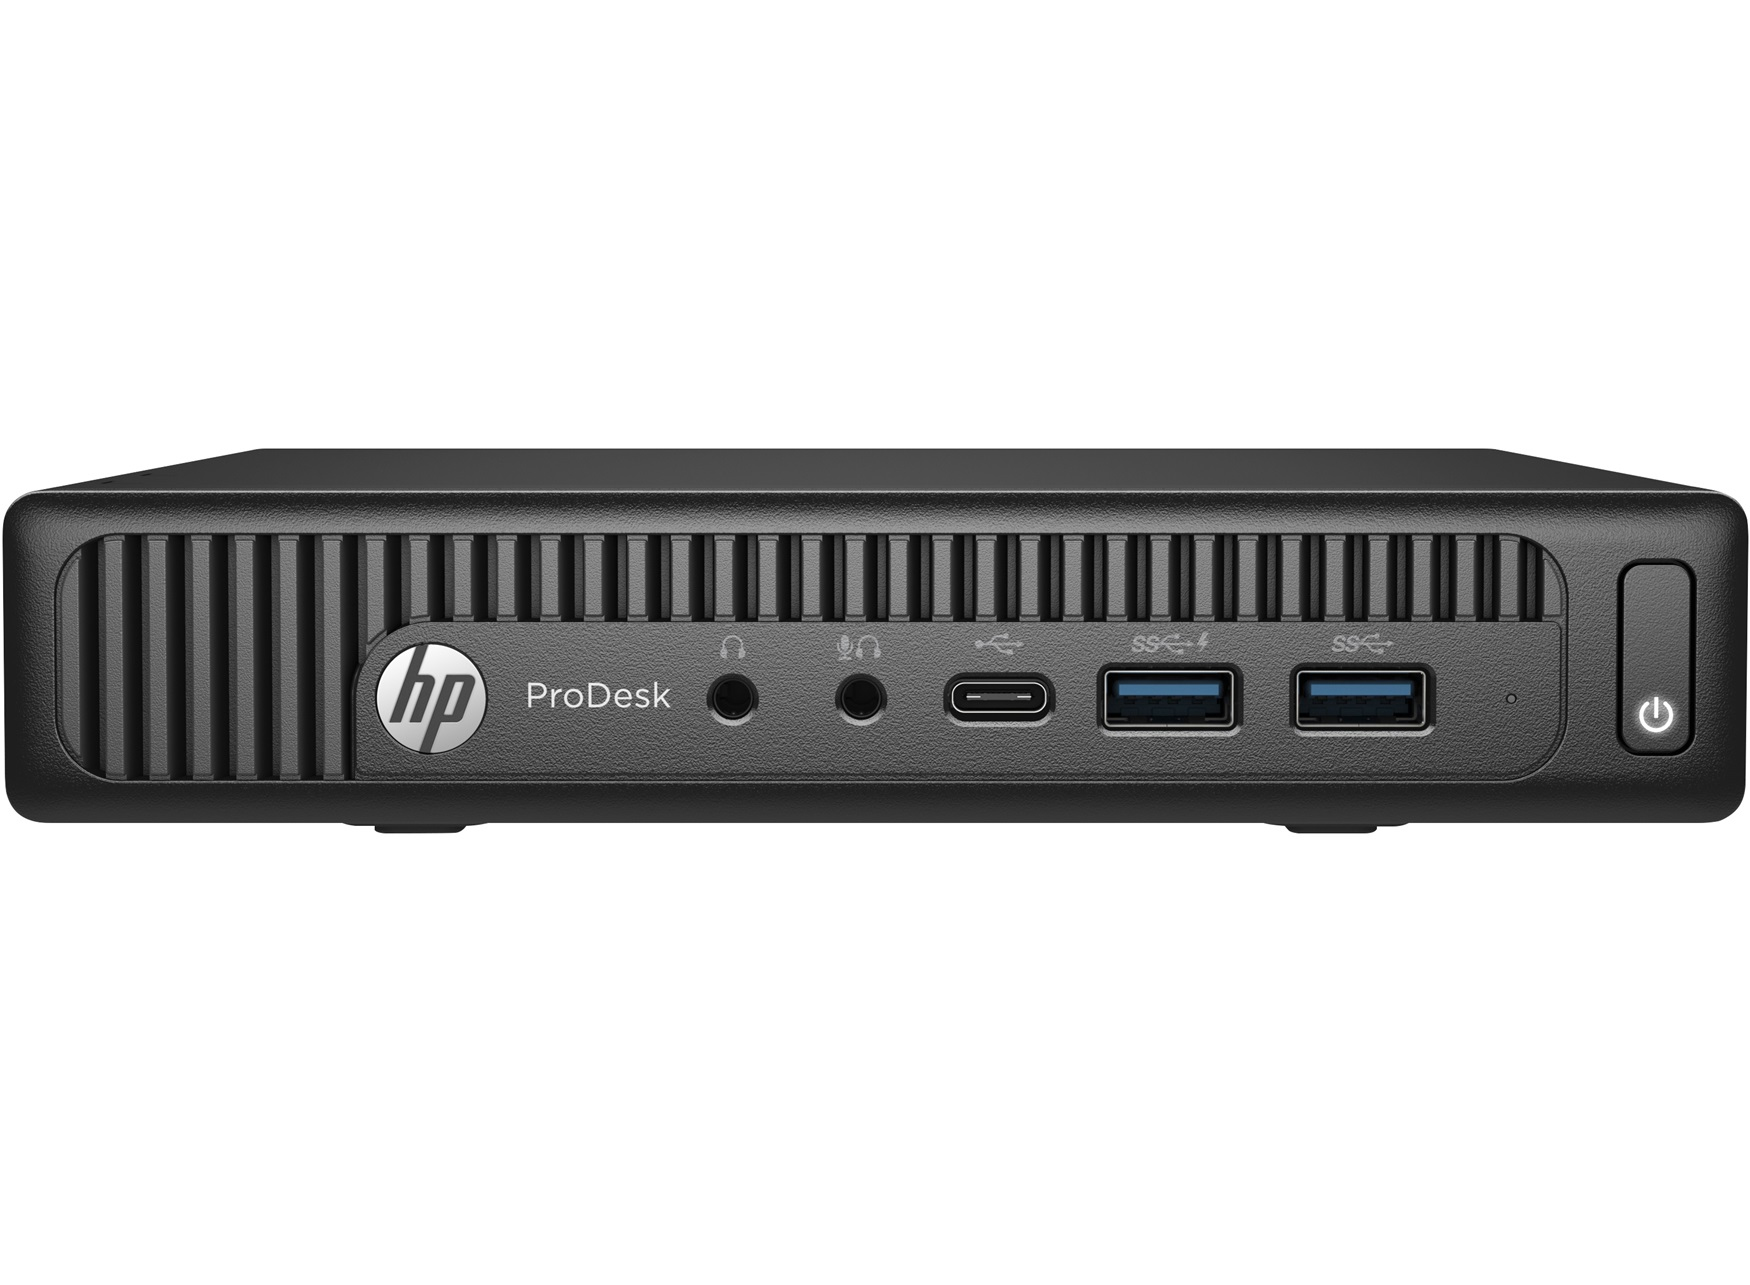 HP ProDesk 600 G2 i5-6500T Desktop Black